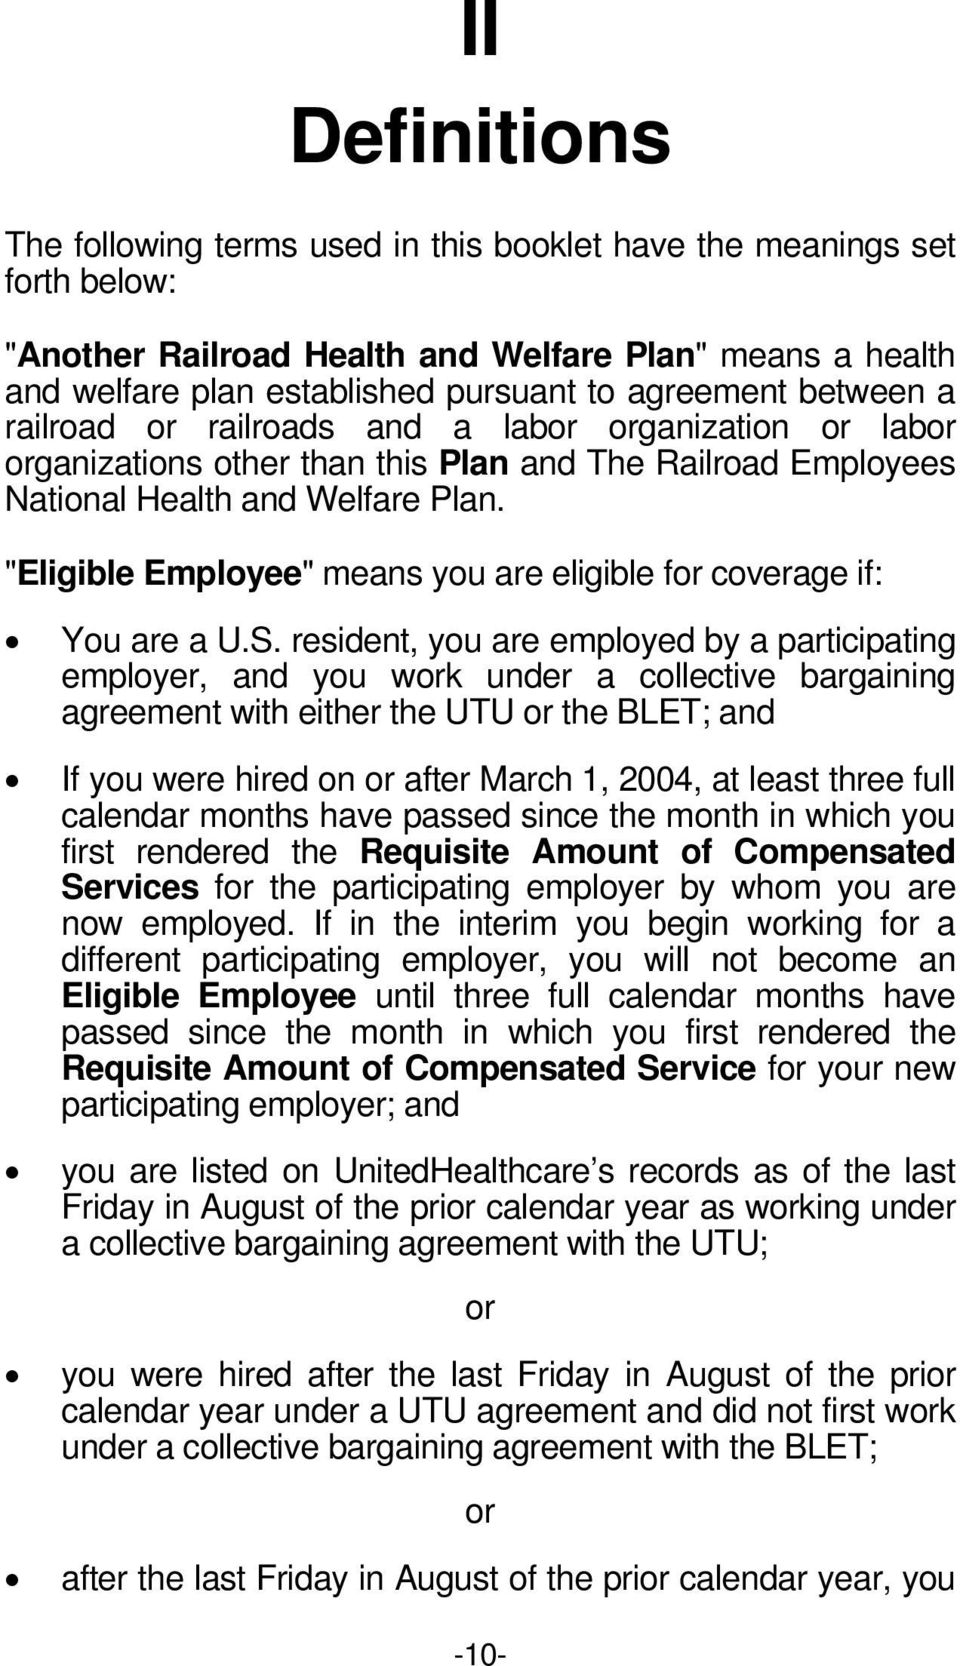 """Eligible Employee"" means you are eligible for coverage if: You are a U.S."